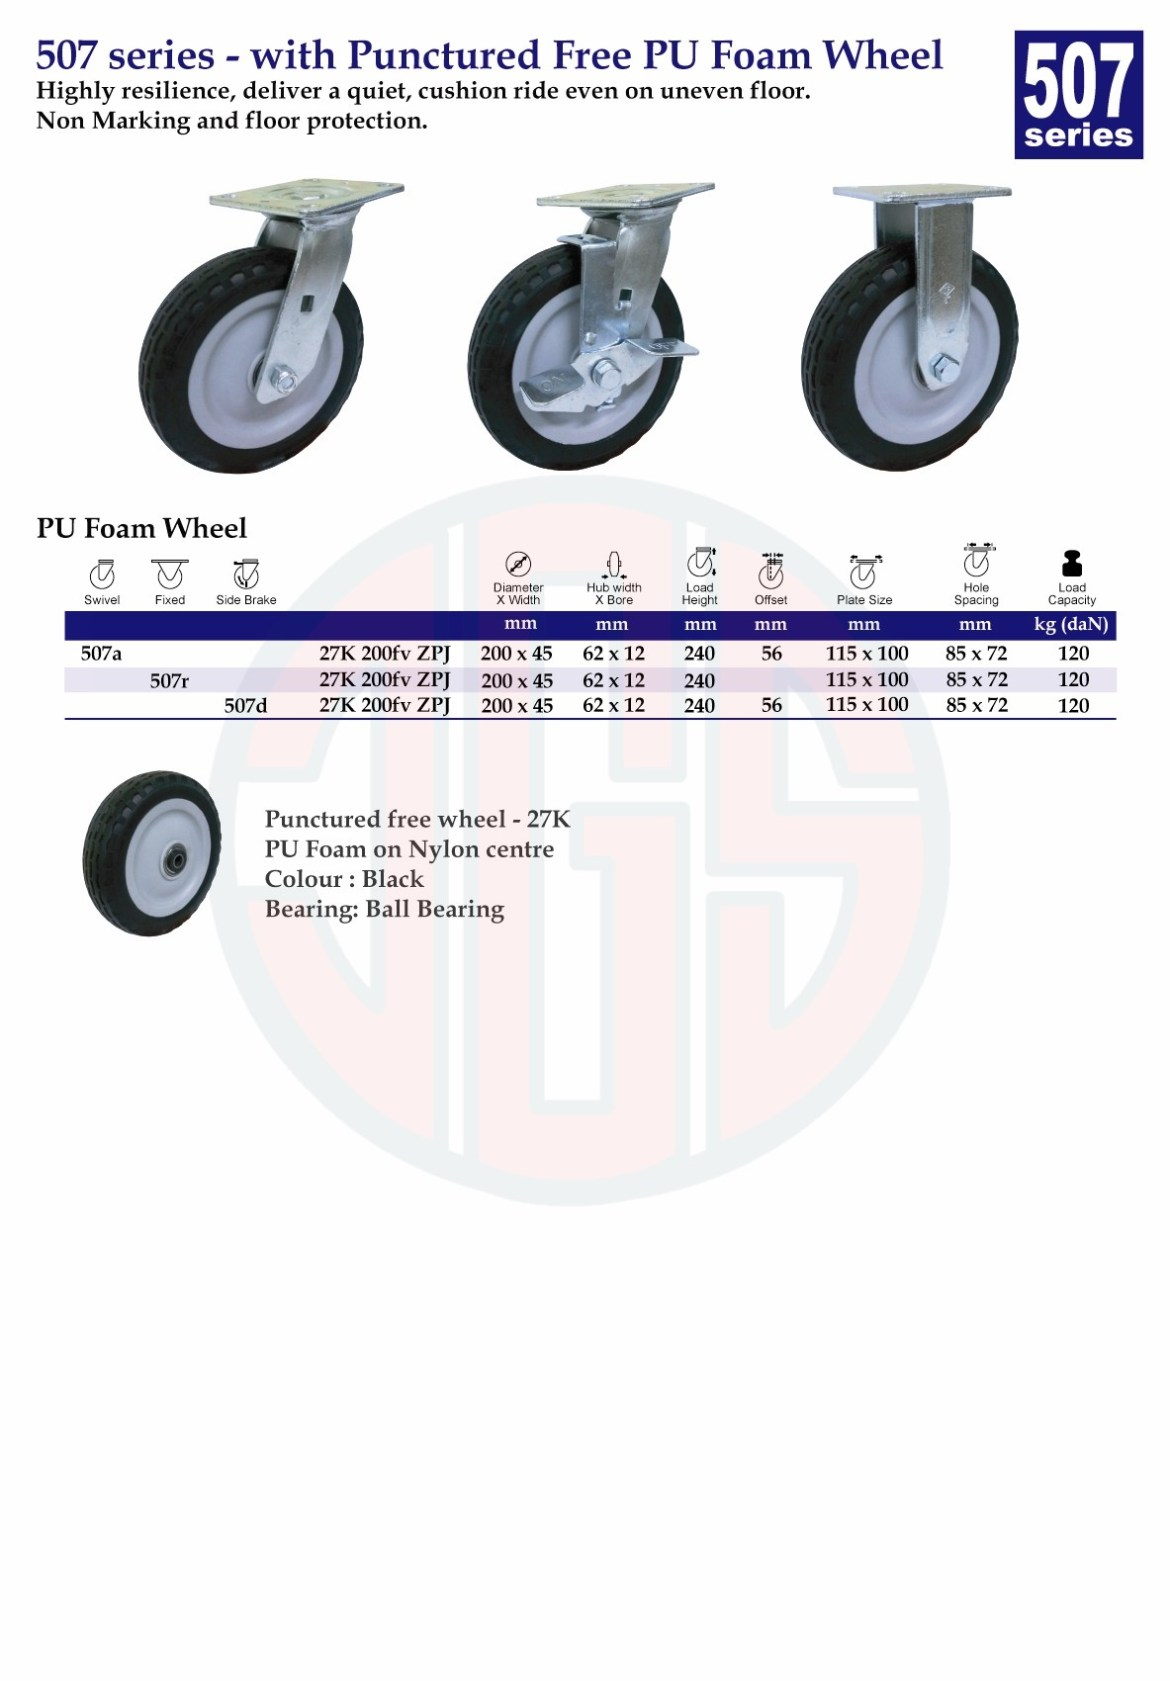 507 series PU Foam Wheel